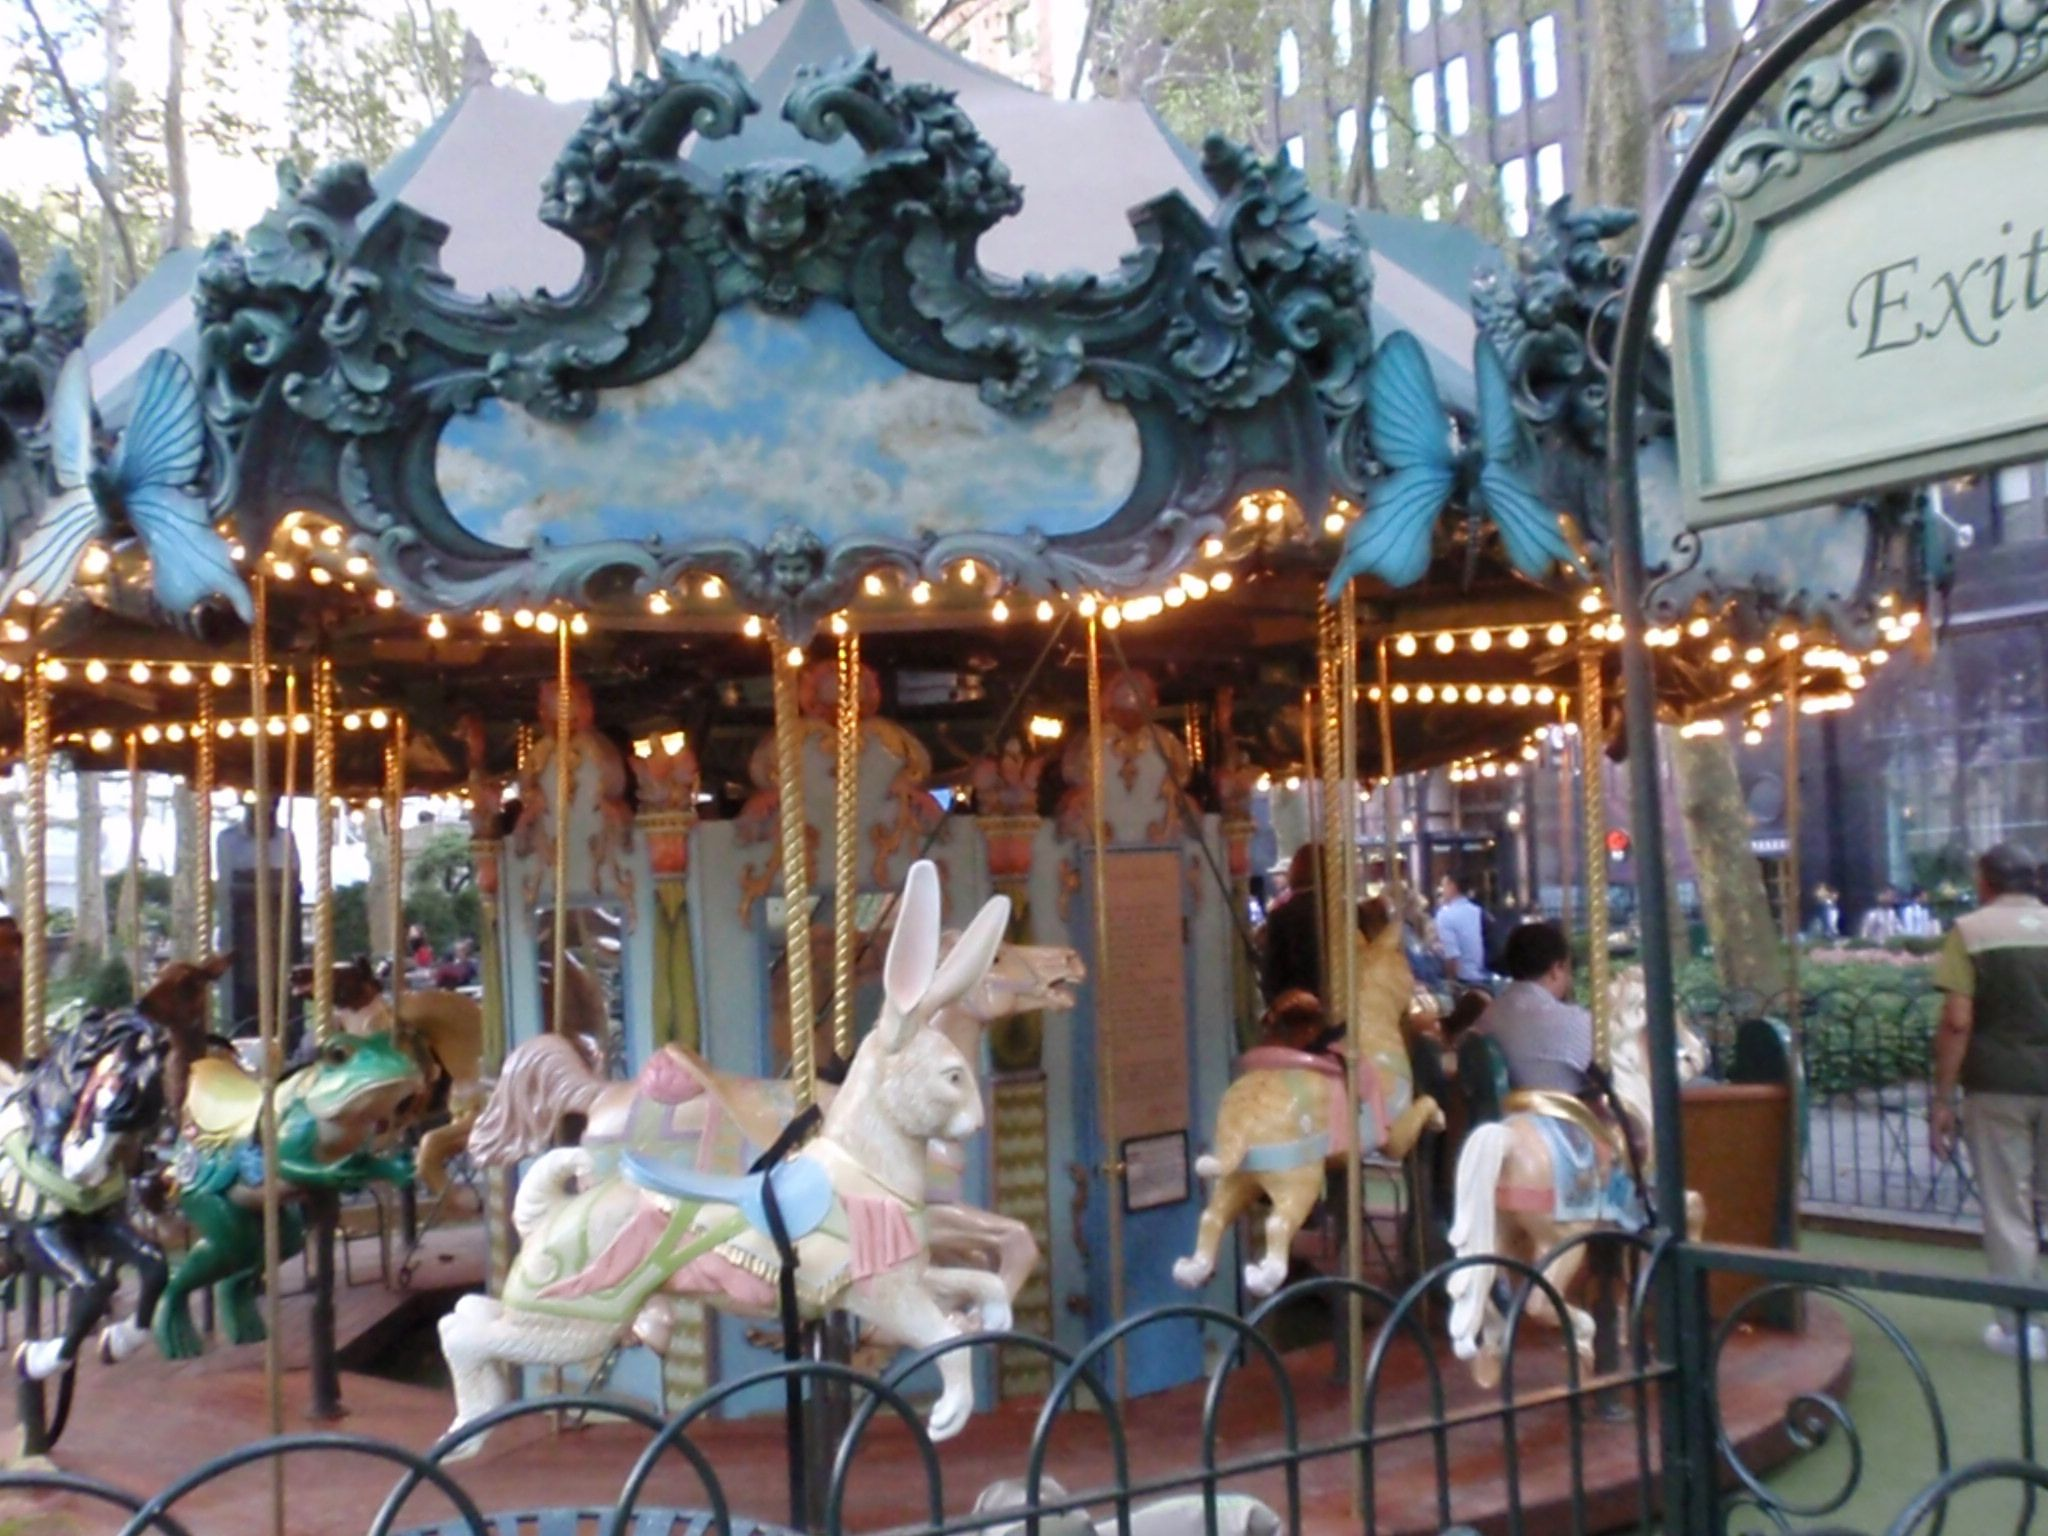 Dreamy Bryant Park Carousel, photo T.de la Guardia